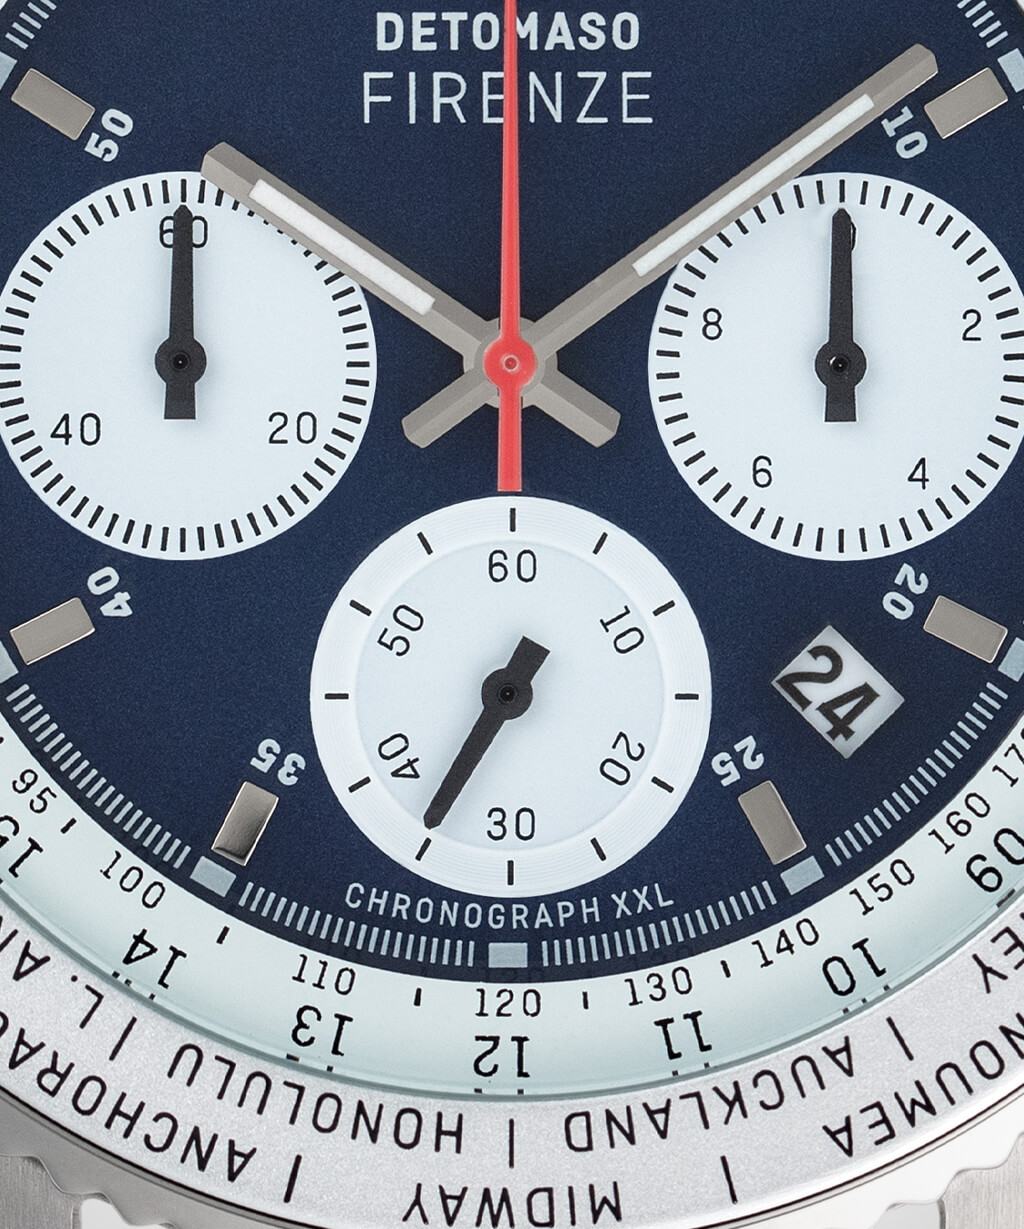 FIRENZE XXL CHRONOGRAPH BLUE - LEATHER STRAP BLUE